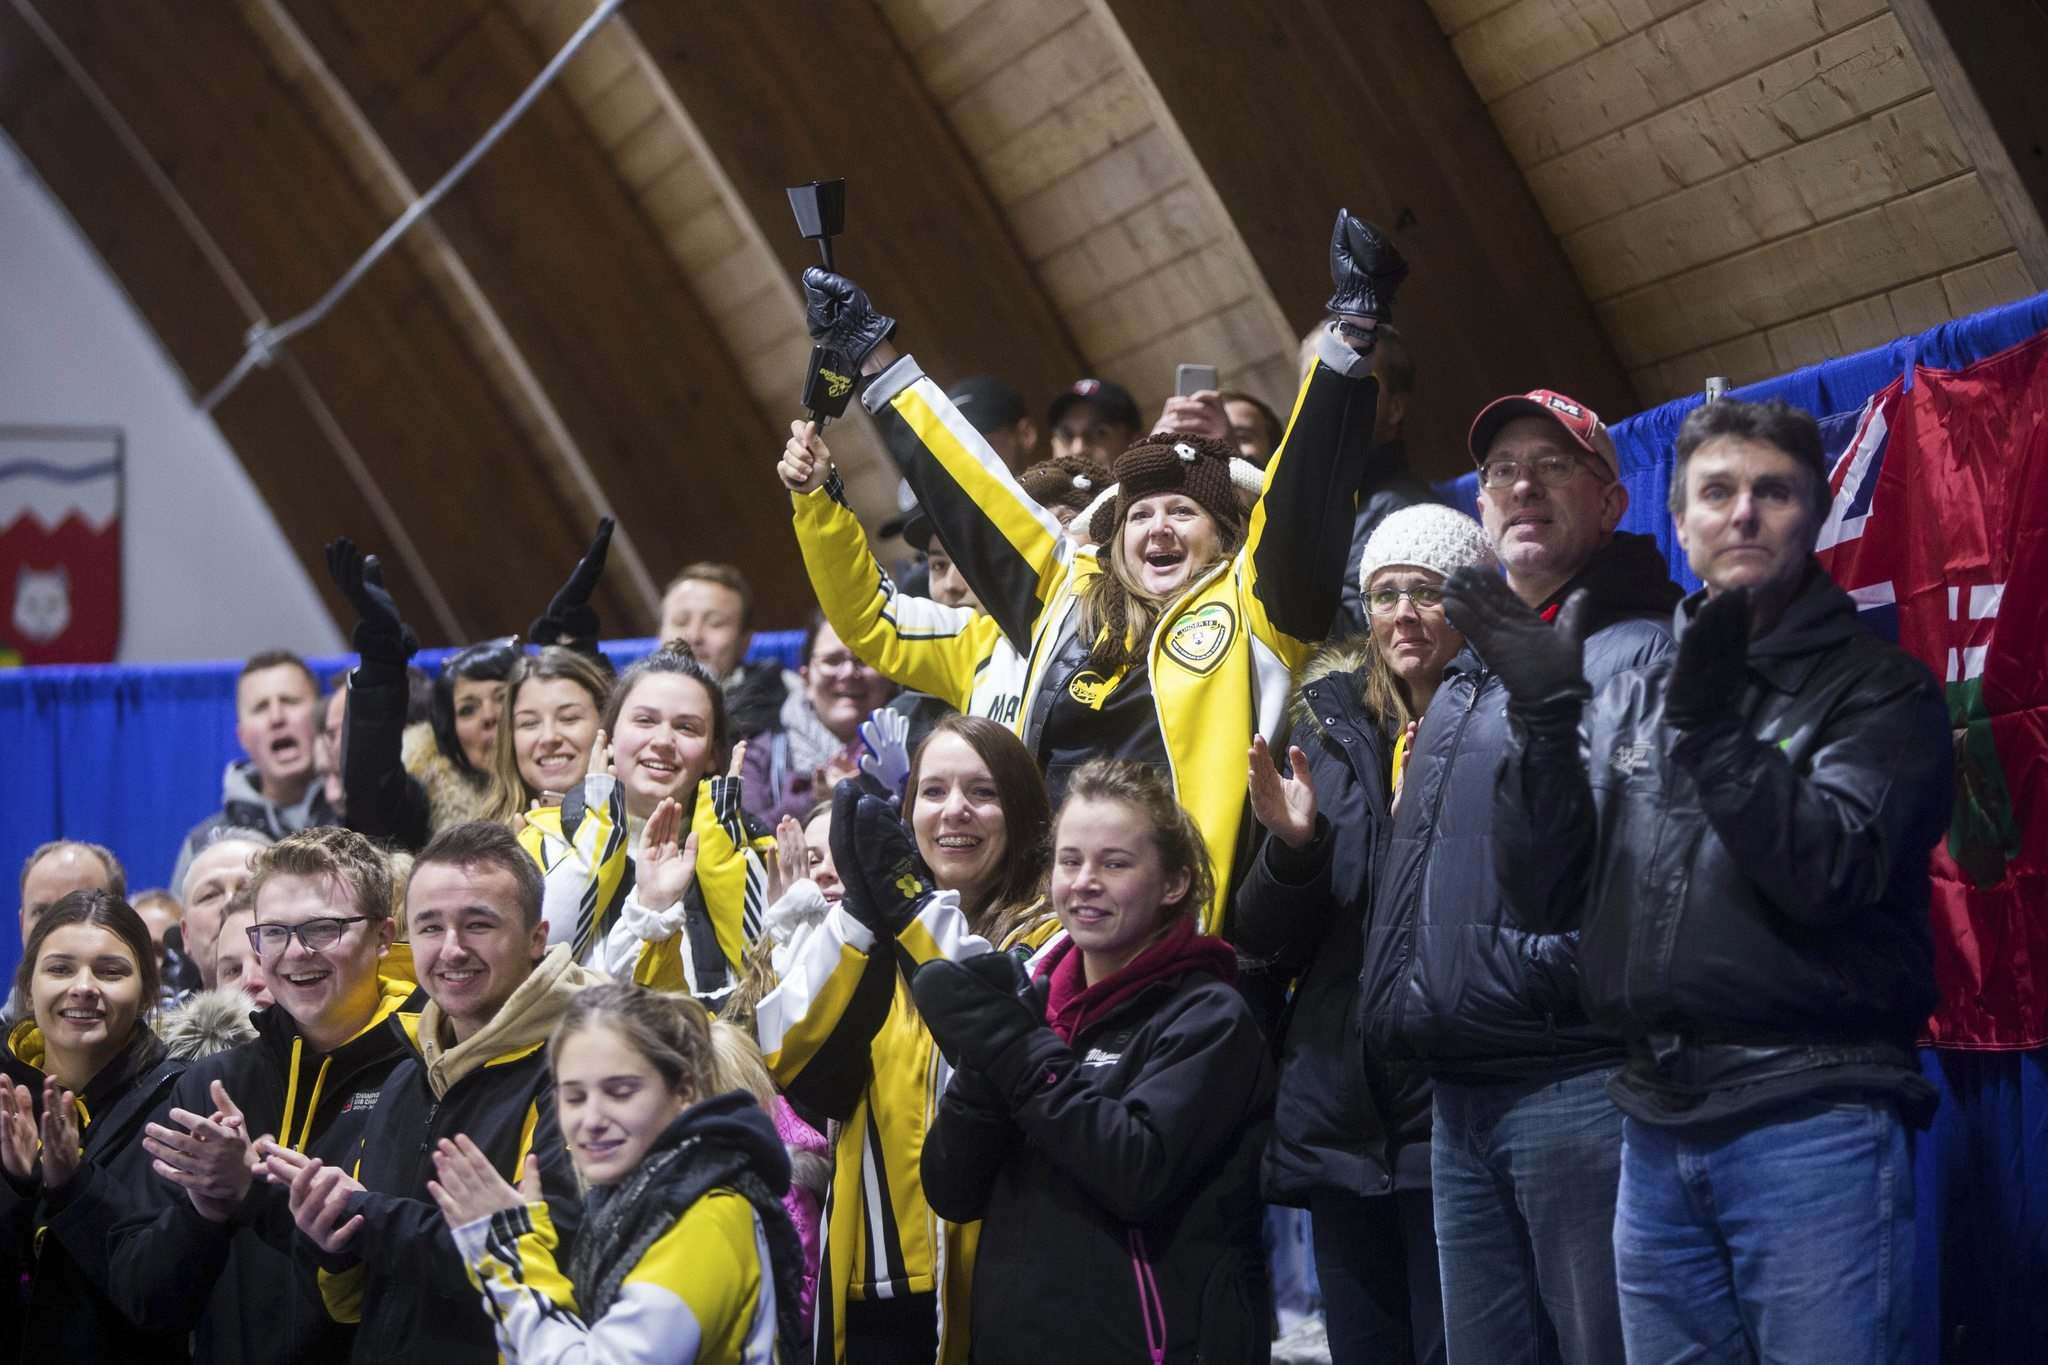 MIKAELA MACKENZIE / WINNIPEG FREE PRESS</p><p>Team Manitoba fans celebrate their win at the Fort Rouge Curling Club in Winnipeg on Saturday, Nov. 10, 2018.</p>